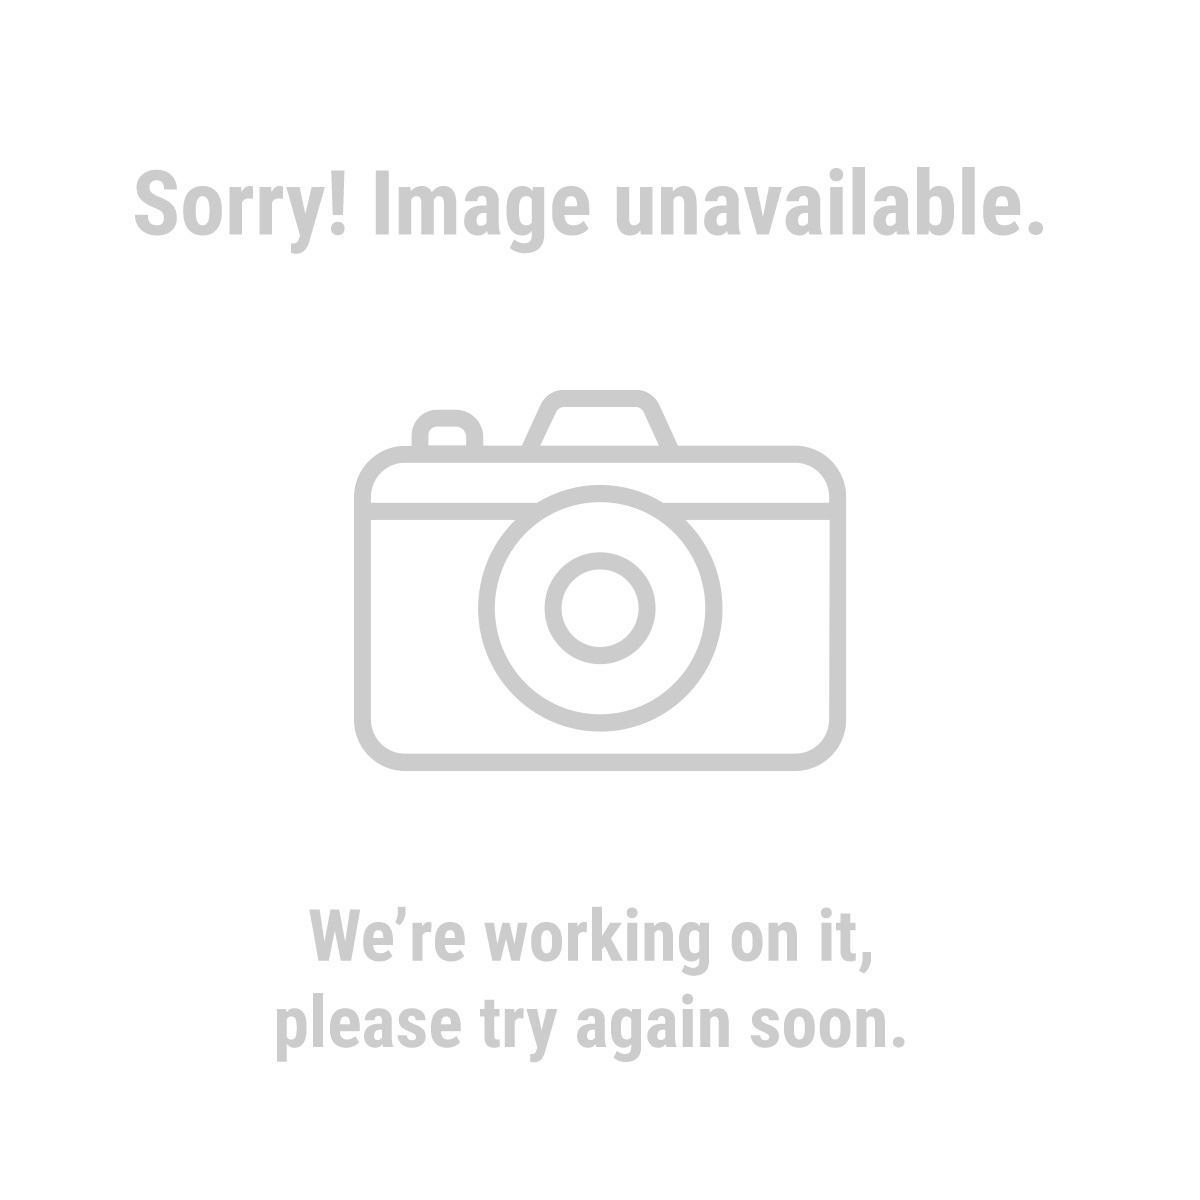 Western Safety 94106 Lumbar Support Belt - XX-Large